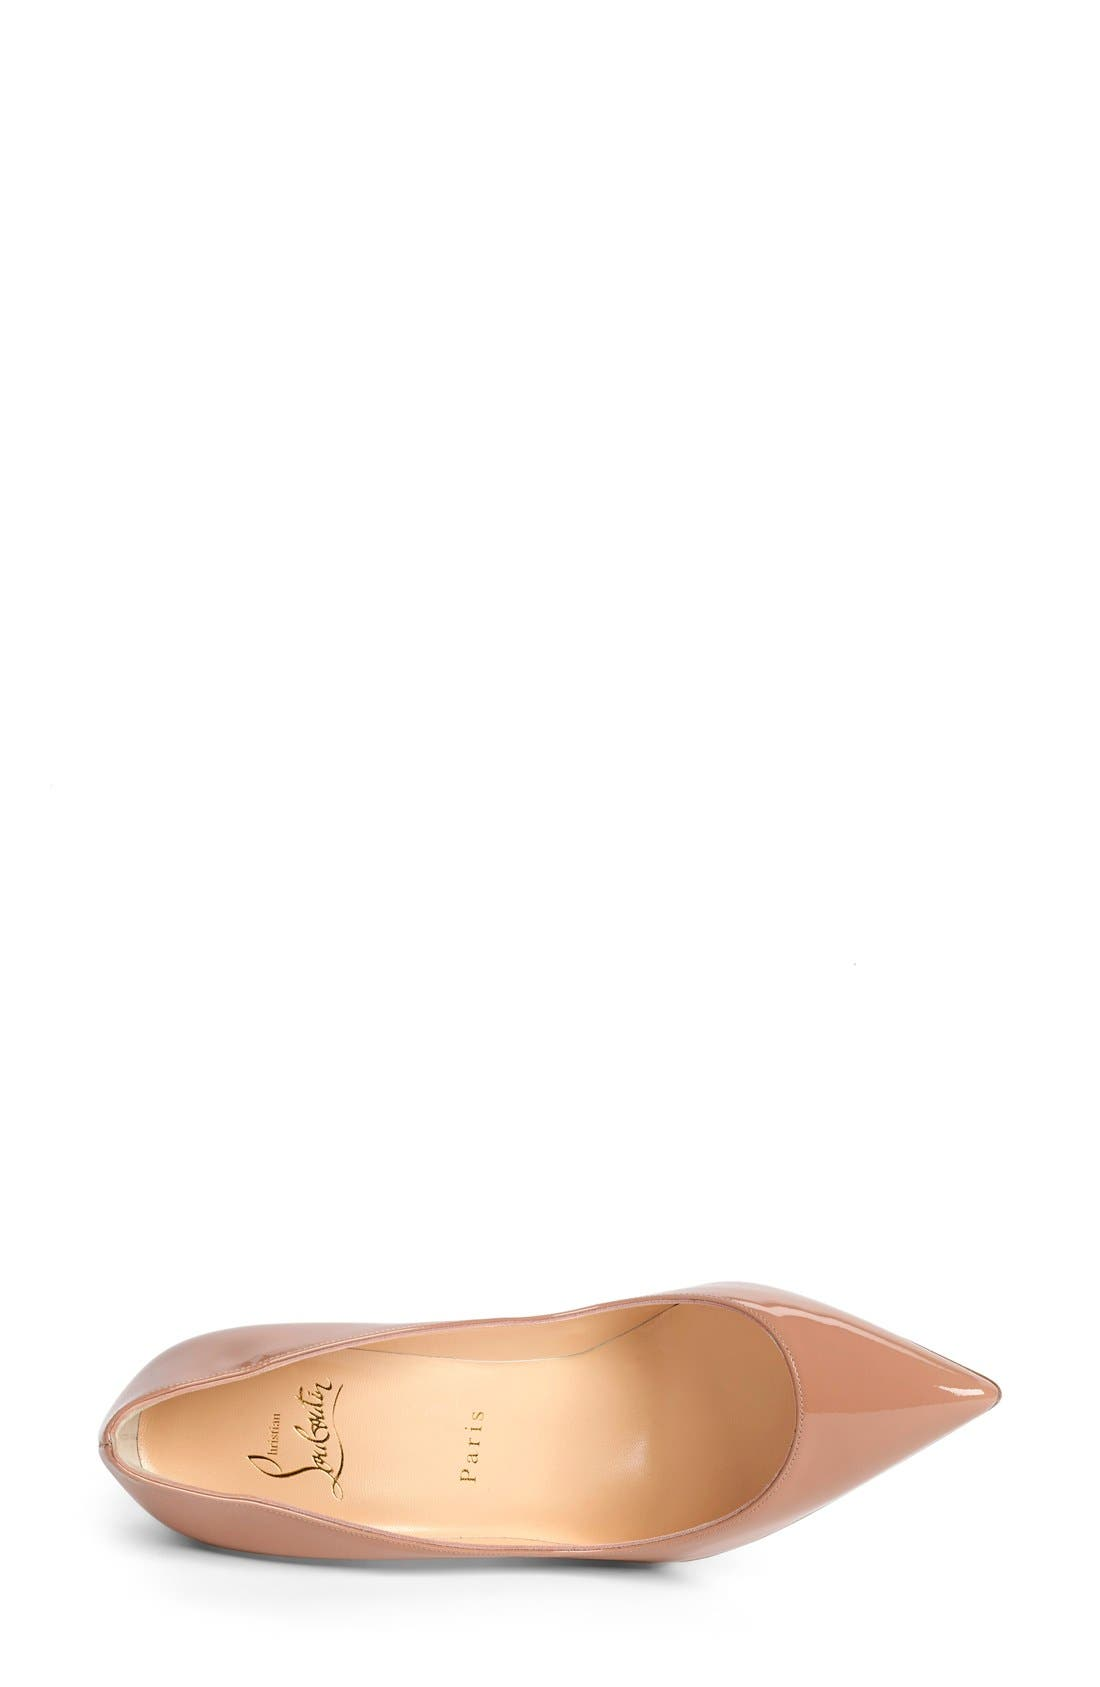 CHRISTIAN LOUBOUTIN Pigalle Follies Patent Pointed-Toe Red Sole Pump, Nude Patent